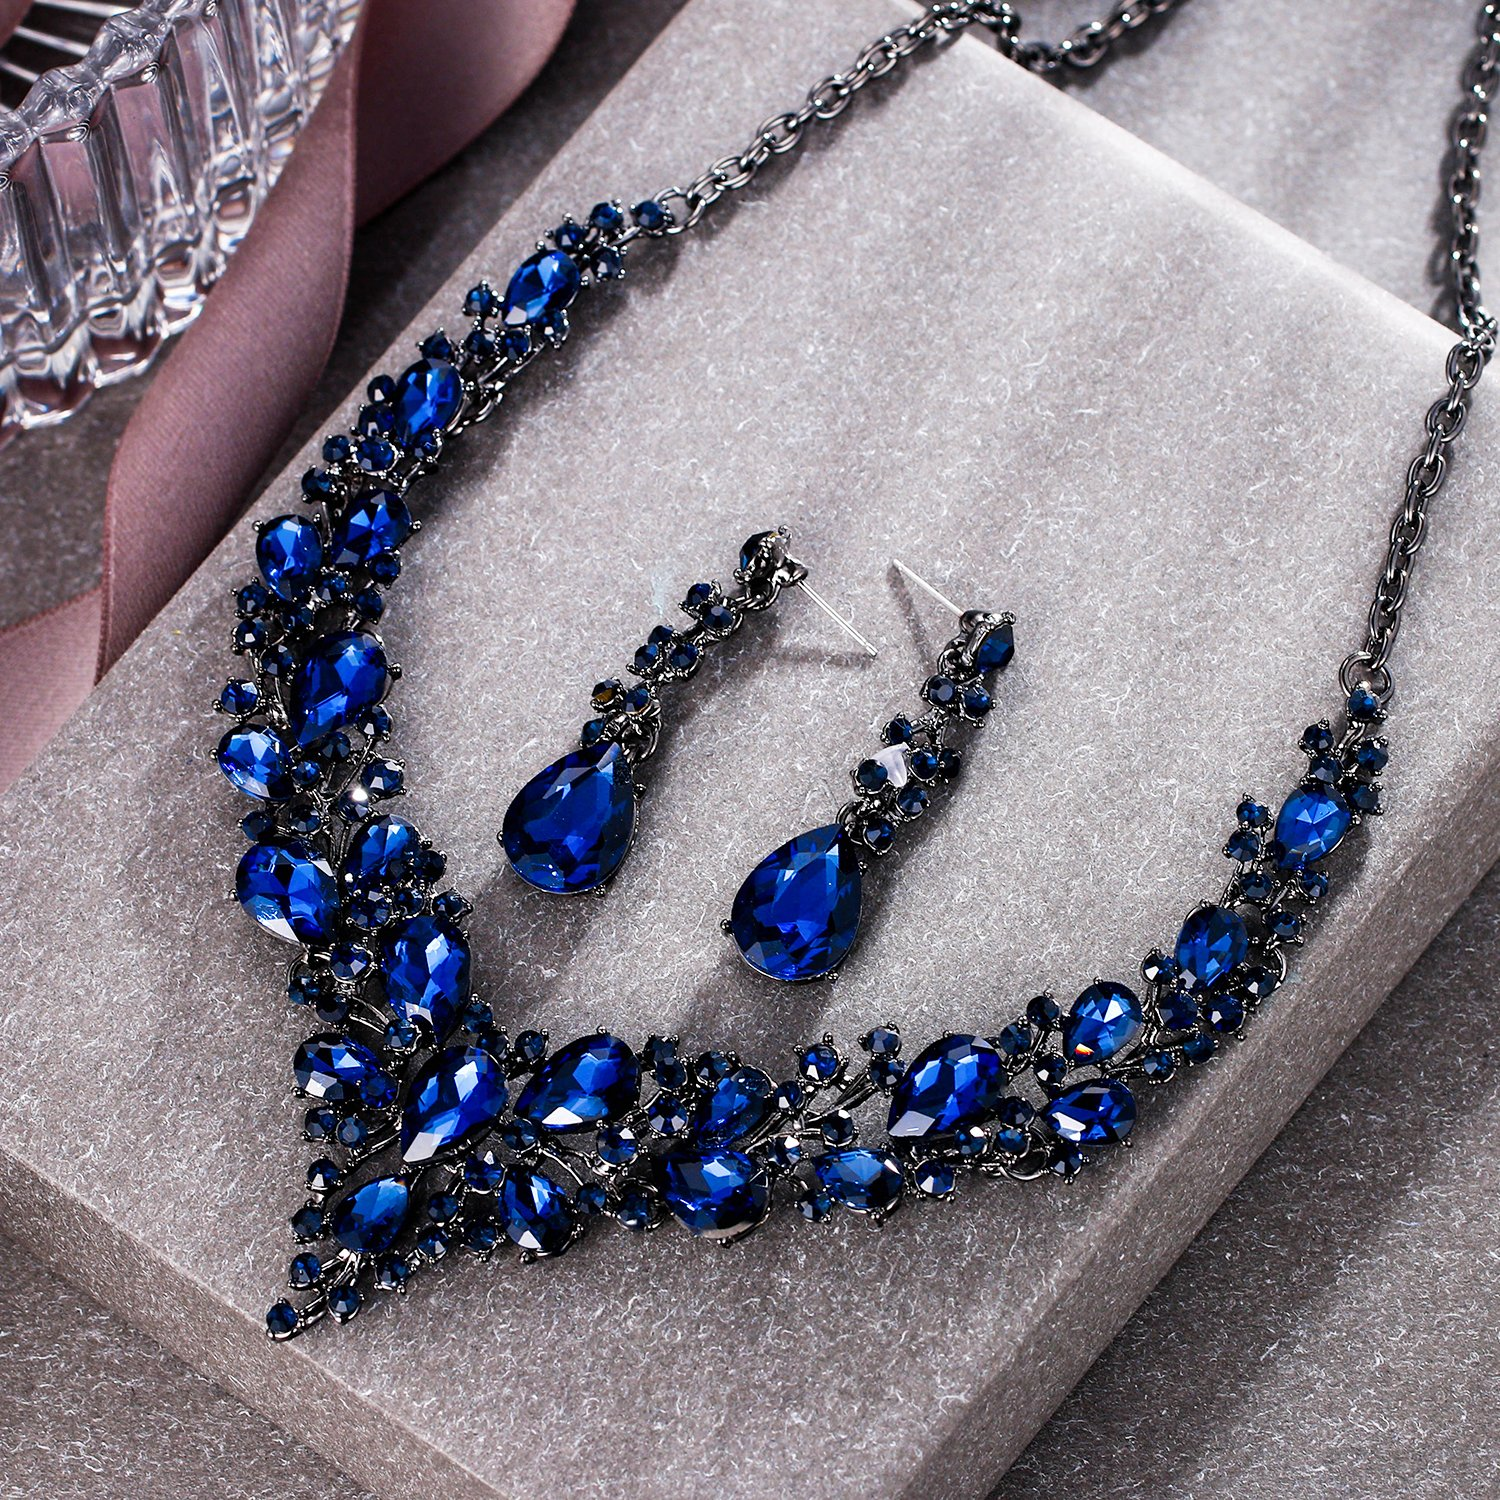 BriLove Wedding Bridal Necklace Earrings Jewelry Set for Women Austrian Crystal Teardrop Cluster Statement Necklace Dangle Earrings Set Navy Blue Sapphire Color Black-Silver-Tone by BriLove (Image #3)